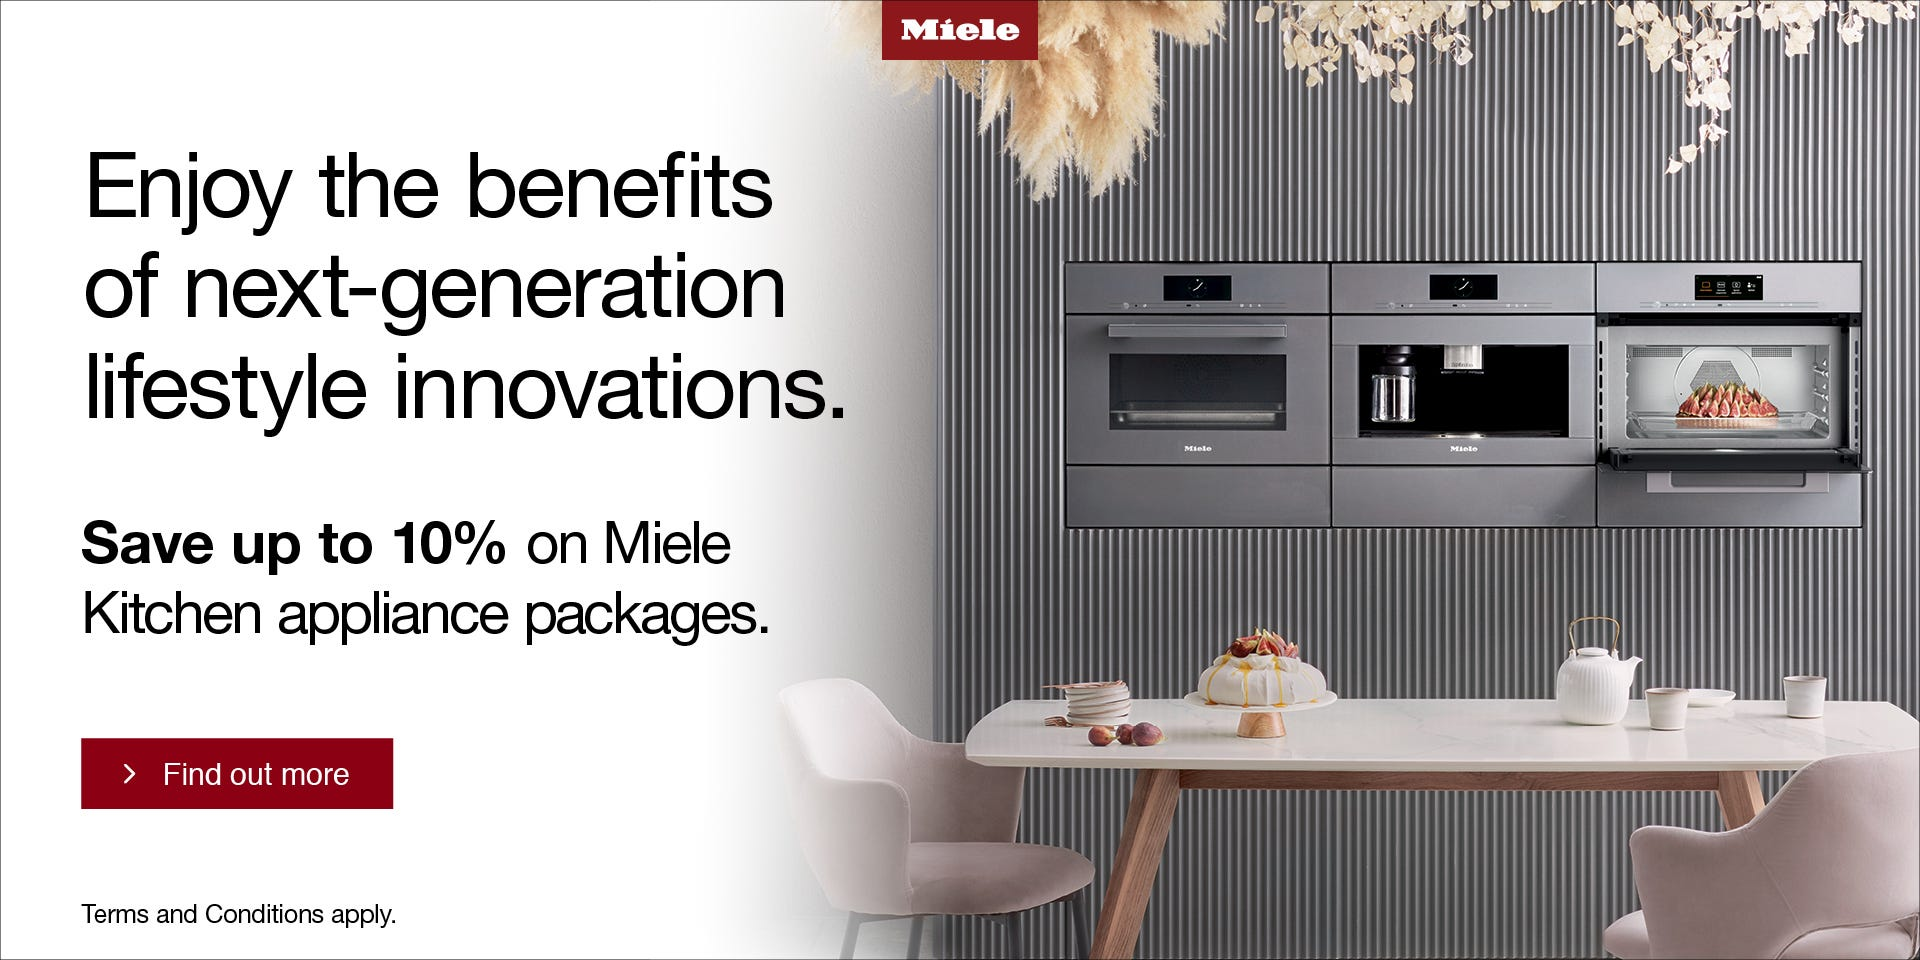 Save up to 10% on Miele Kitchen appliance packages with e&s. Conditions apply.